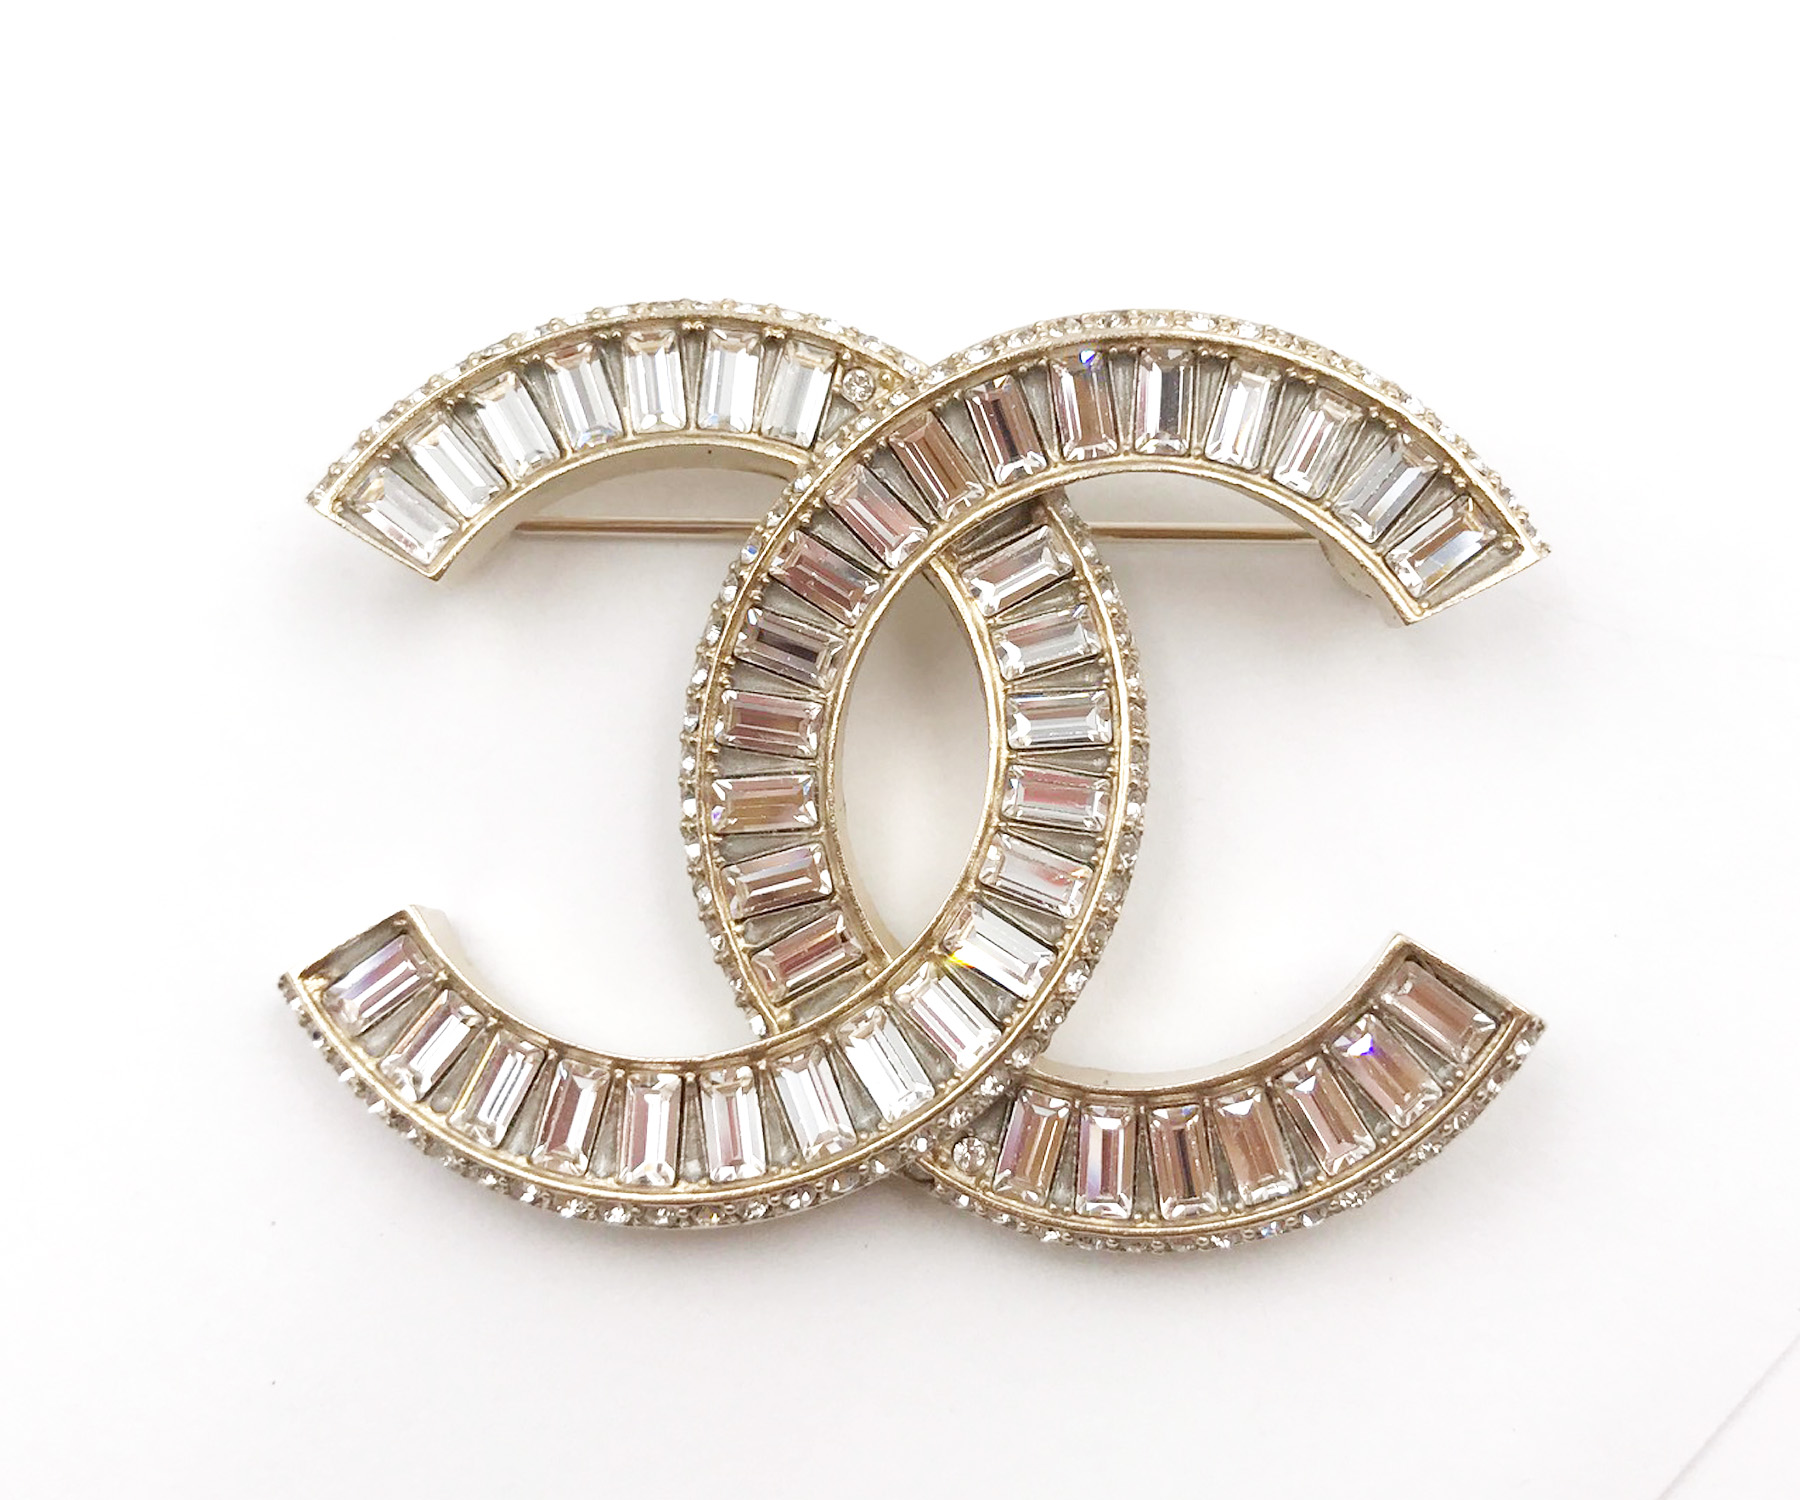 Chanel Brand New Gold Cc Silver Baguette Crystal Brooch